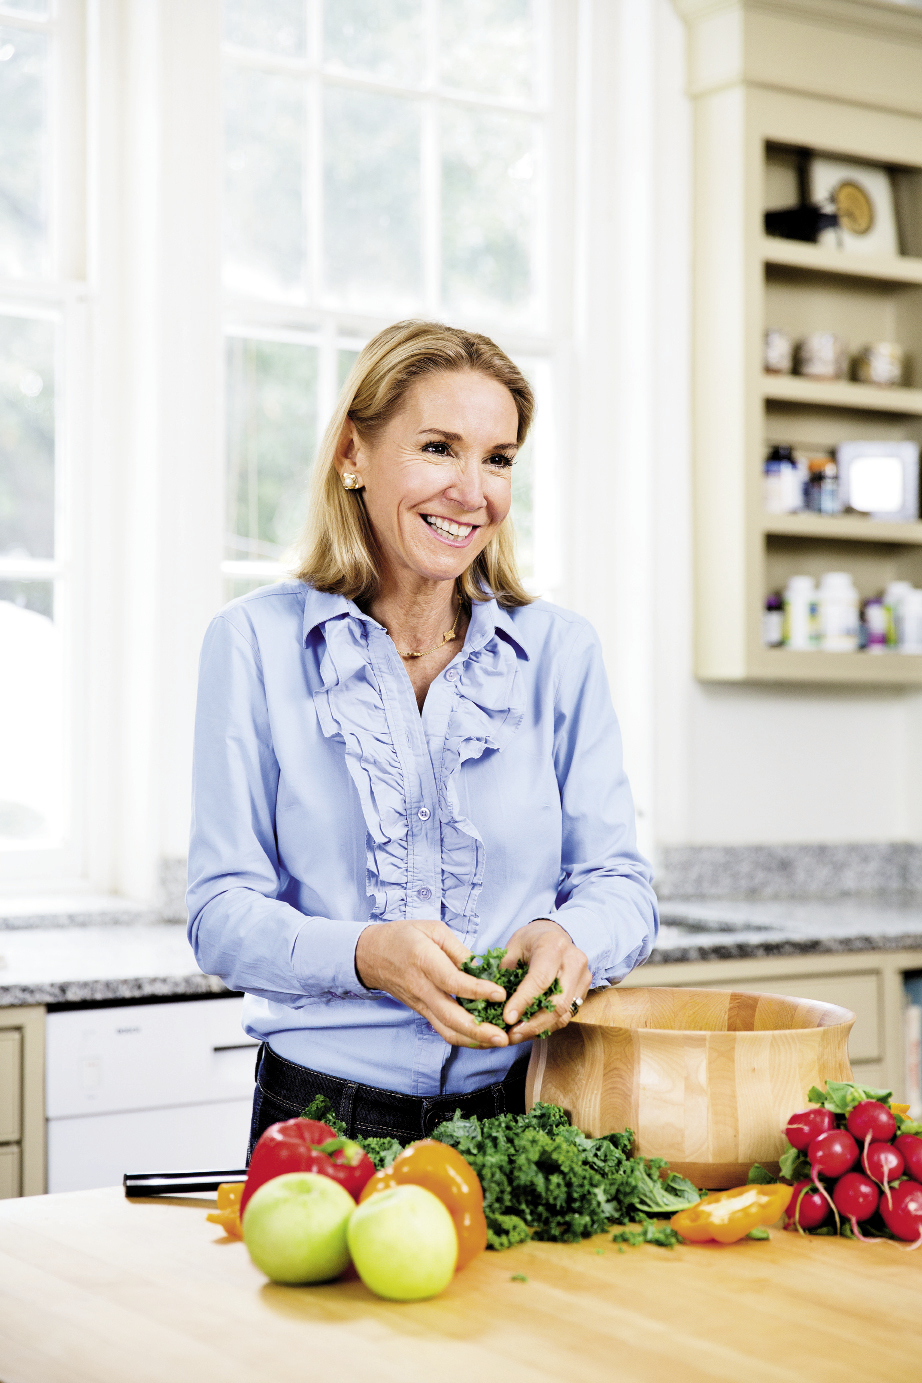 """""""I grew up with Southern food, and I love it,"""" notes Dr. Ann. """"Sure, there are some culturally entrenched habits that aren't good for us, but lots of traditional Southern foods are excellent super foods. It just depends on how you prepare them."""""""